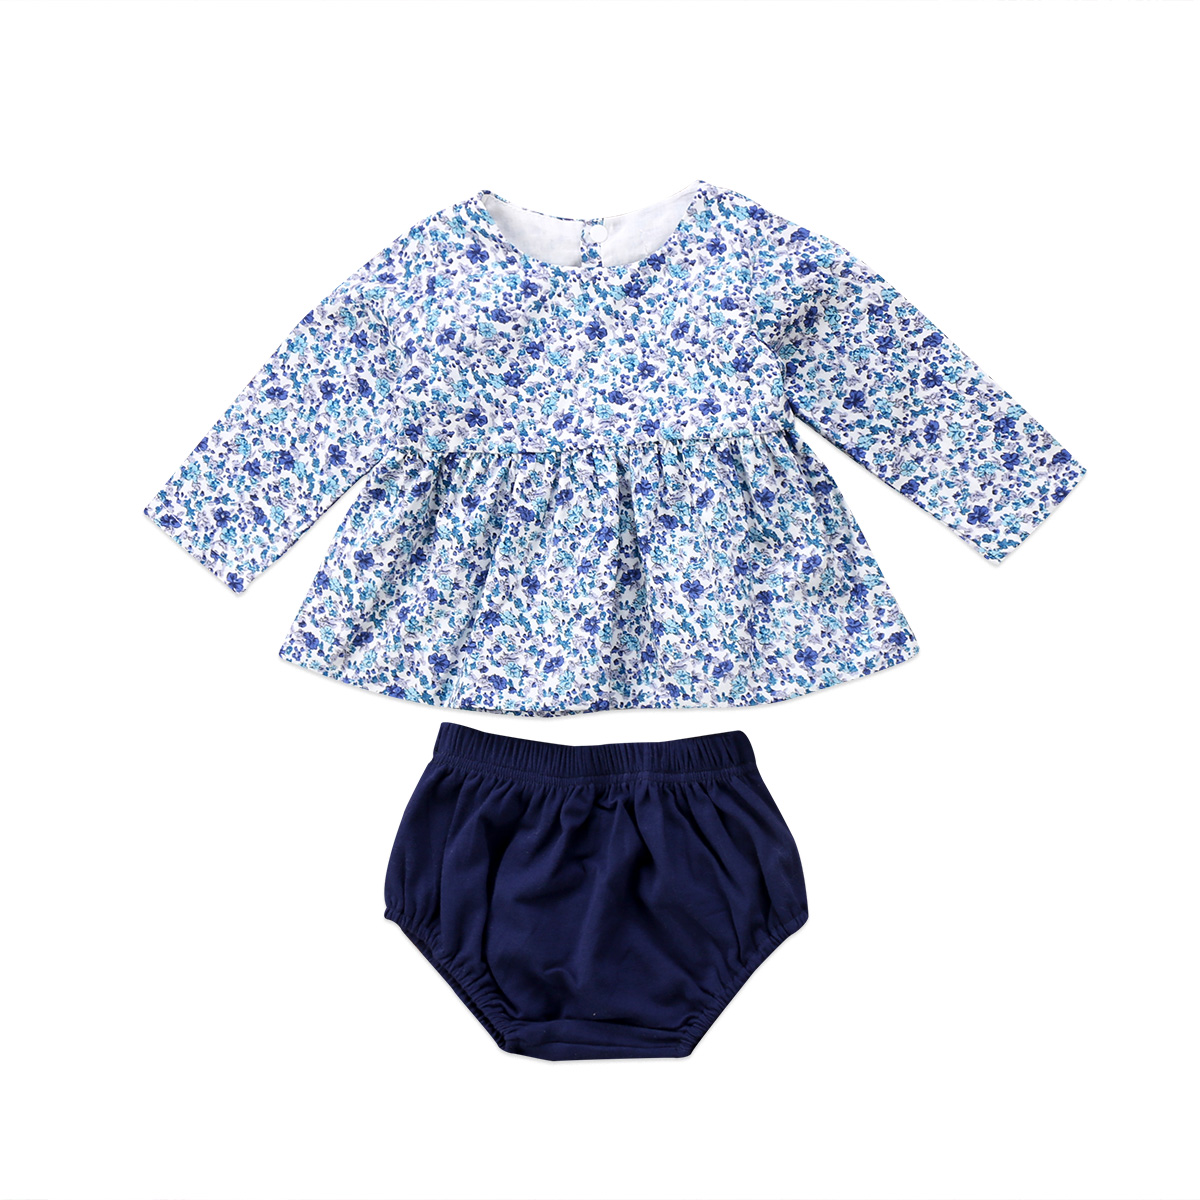 Newborn Kid Baby Girls Clothes Sets Floral Dress Tops Long Sleeve Shorts 2pcs Briefs Clothing Set Baby Girl Outfits infant tops pants love pattern headband baby girl outfit set clothing 3pcs kid children baby girls clothes long sleeve